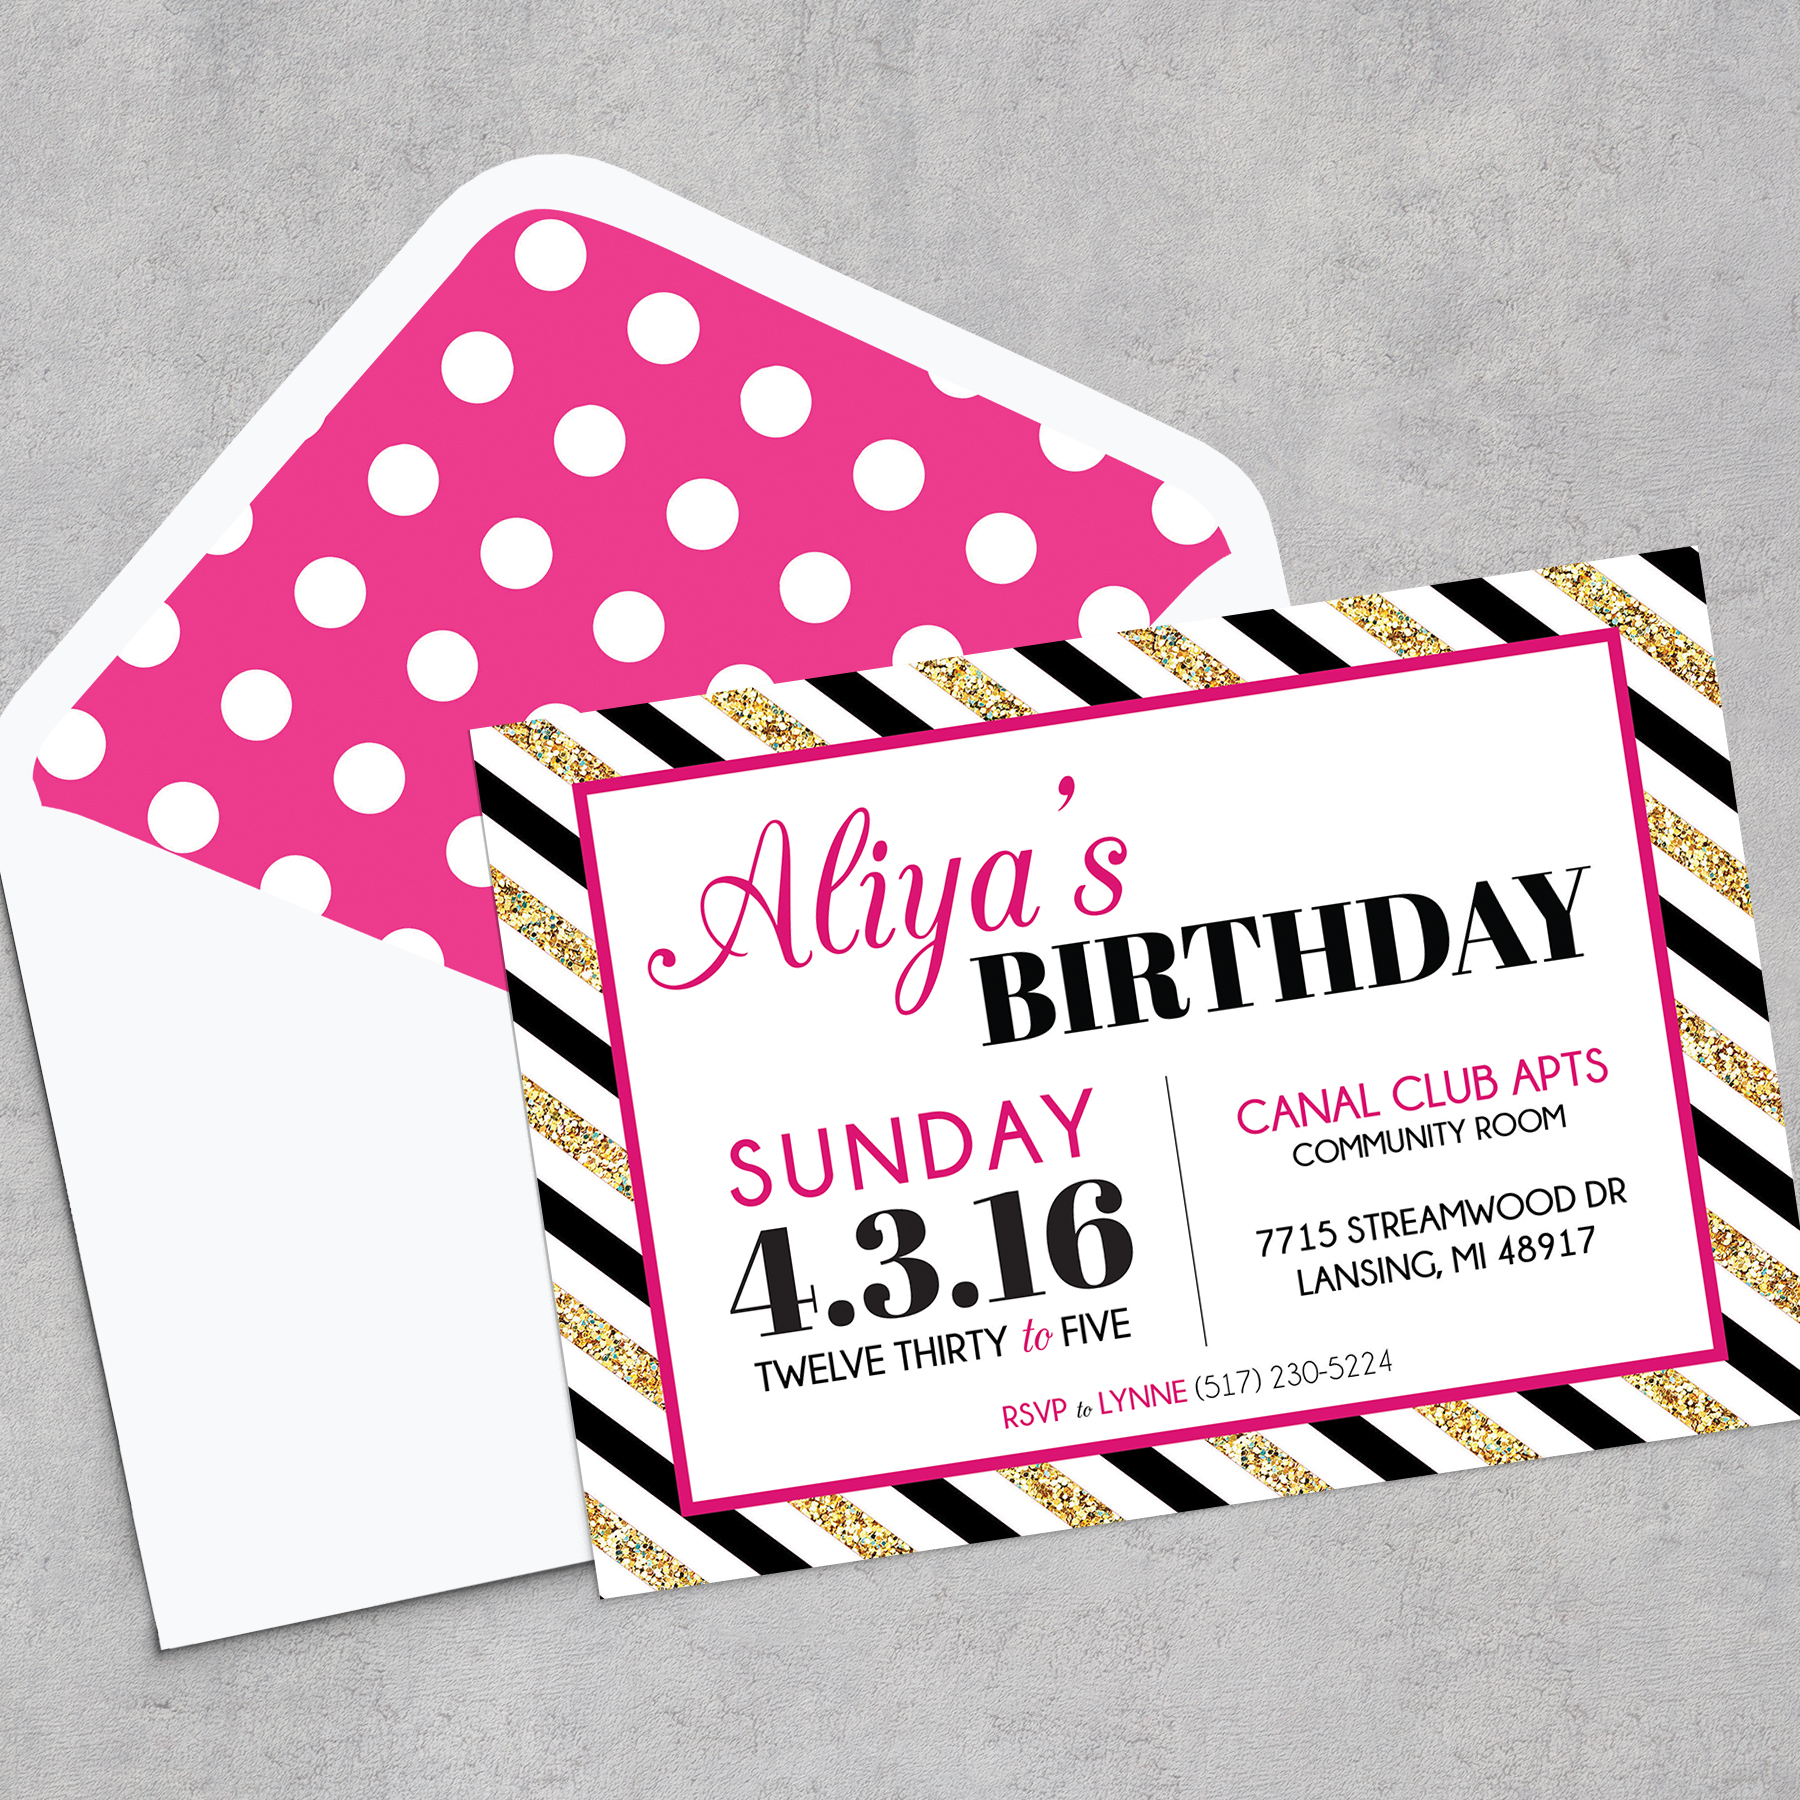 Kate Spade Inspired Birthday Party Invitation Digital